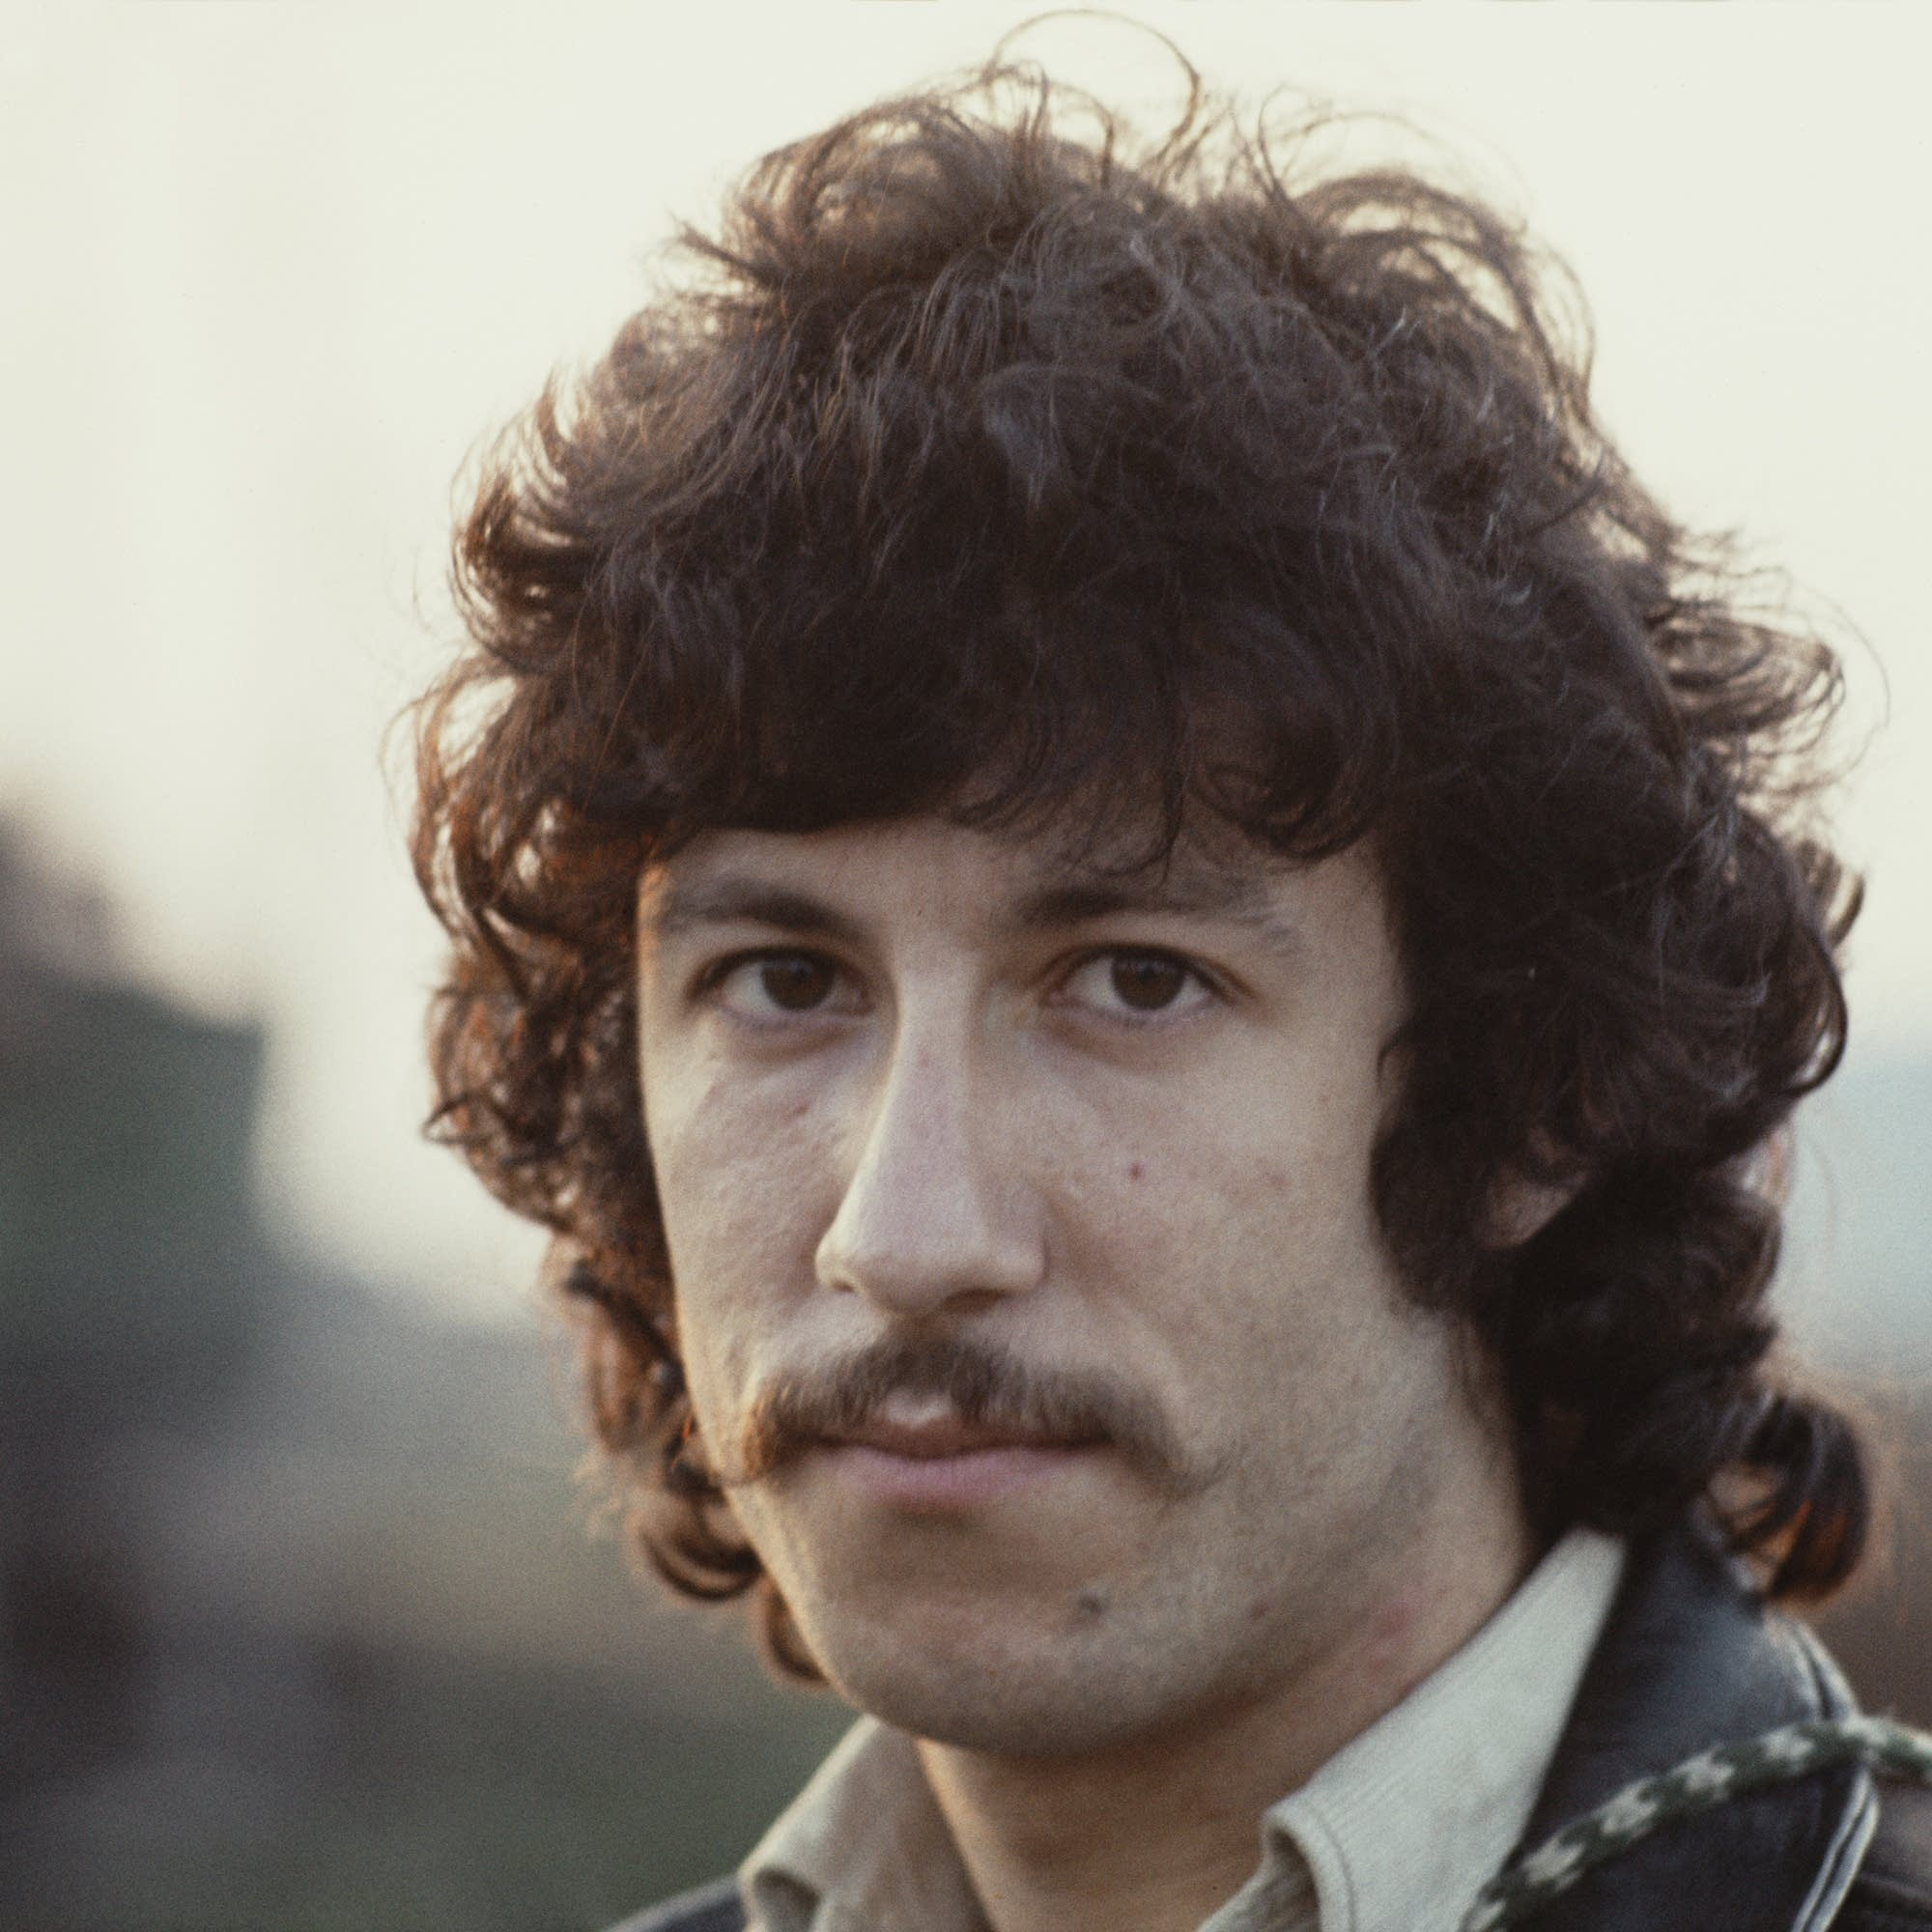 Peter Green, Fleetwood Mac co-founder